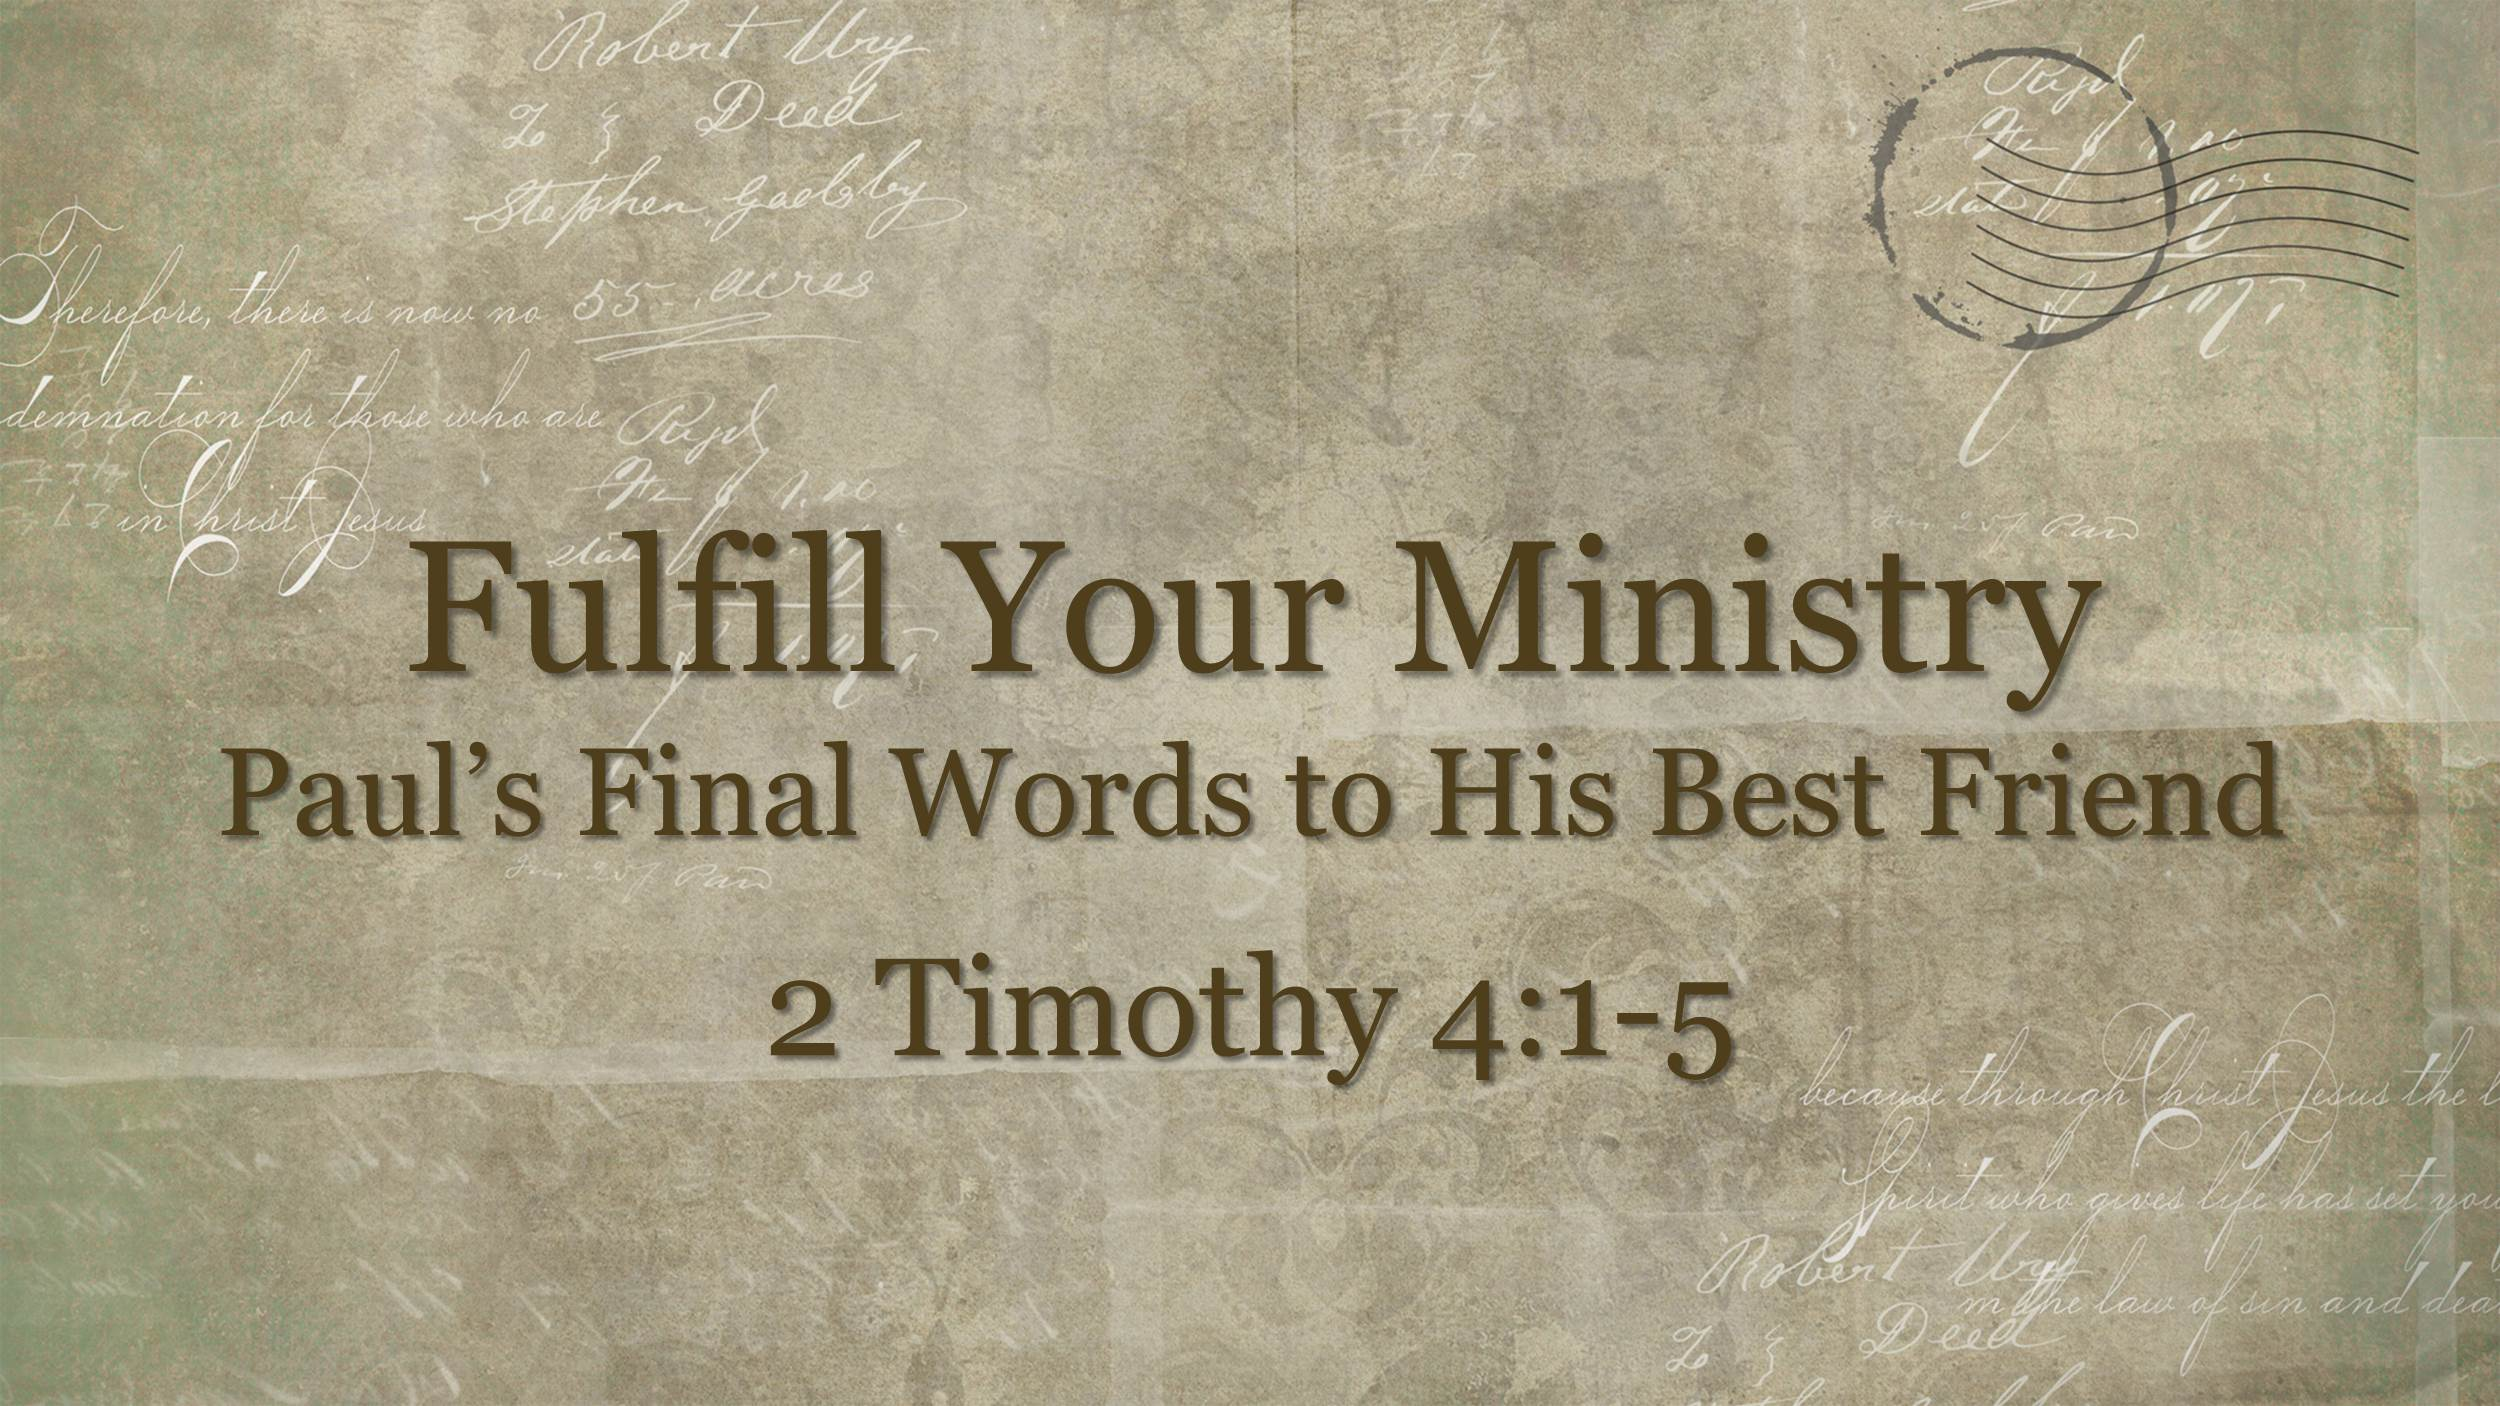 Fulfill Your Ministry- Paul's Final Words to His Best Friend (3/11/18)